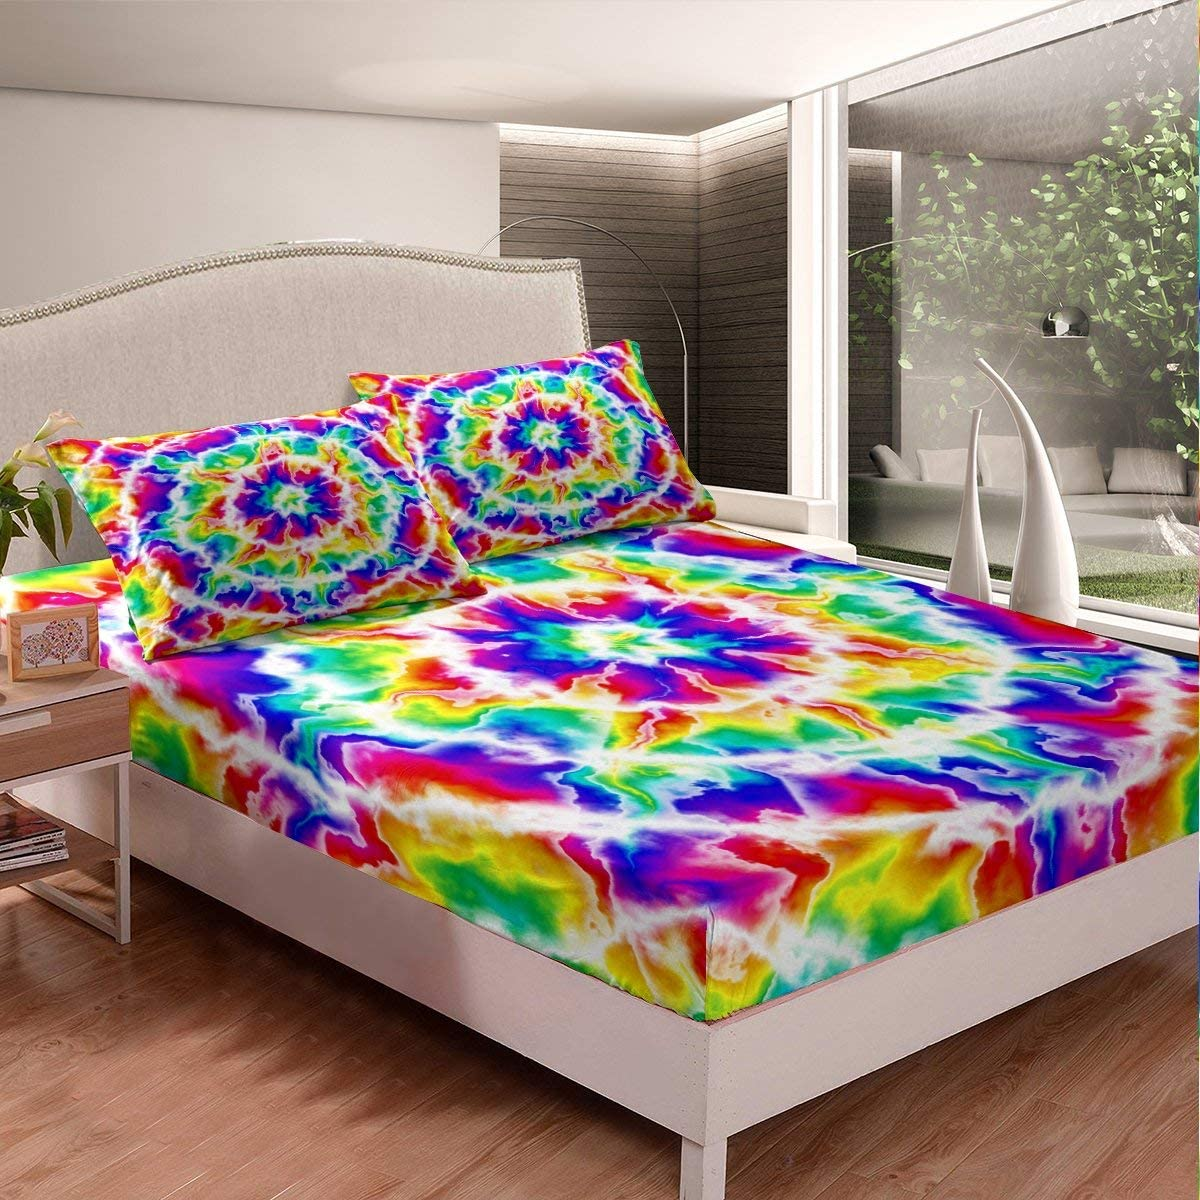 Rainbow Manufacturer regenerated Topics on TV product Tie Dye Fitted Sheet Girls Iridescent 3D Watercol Swirl